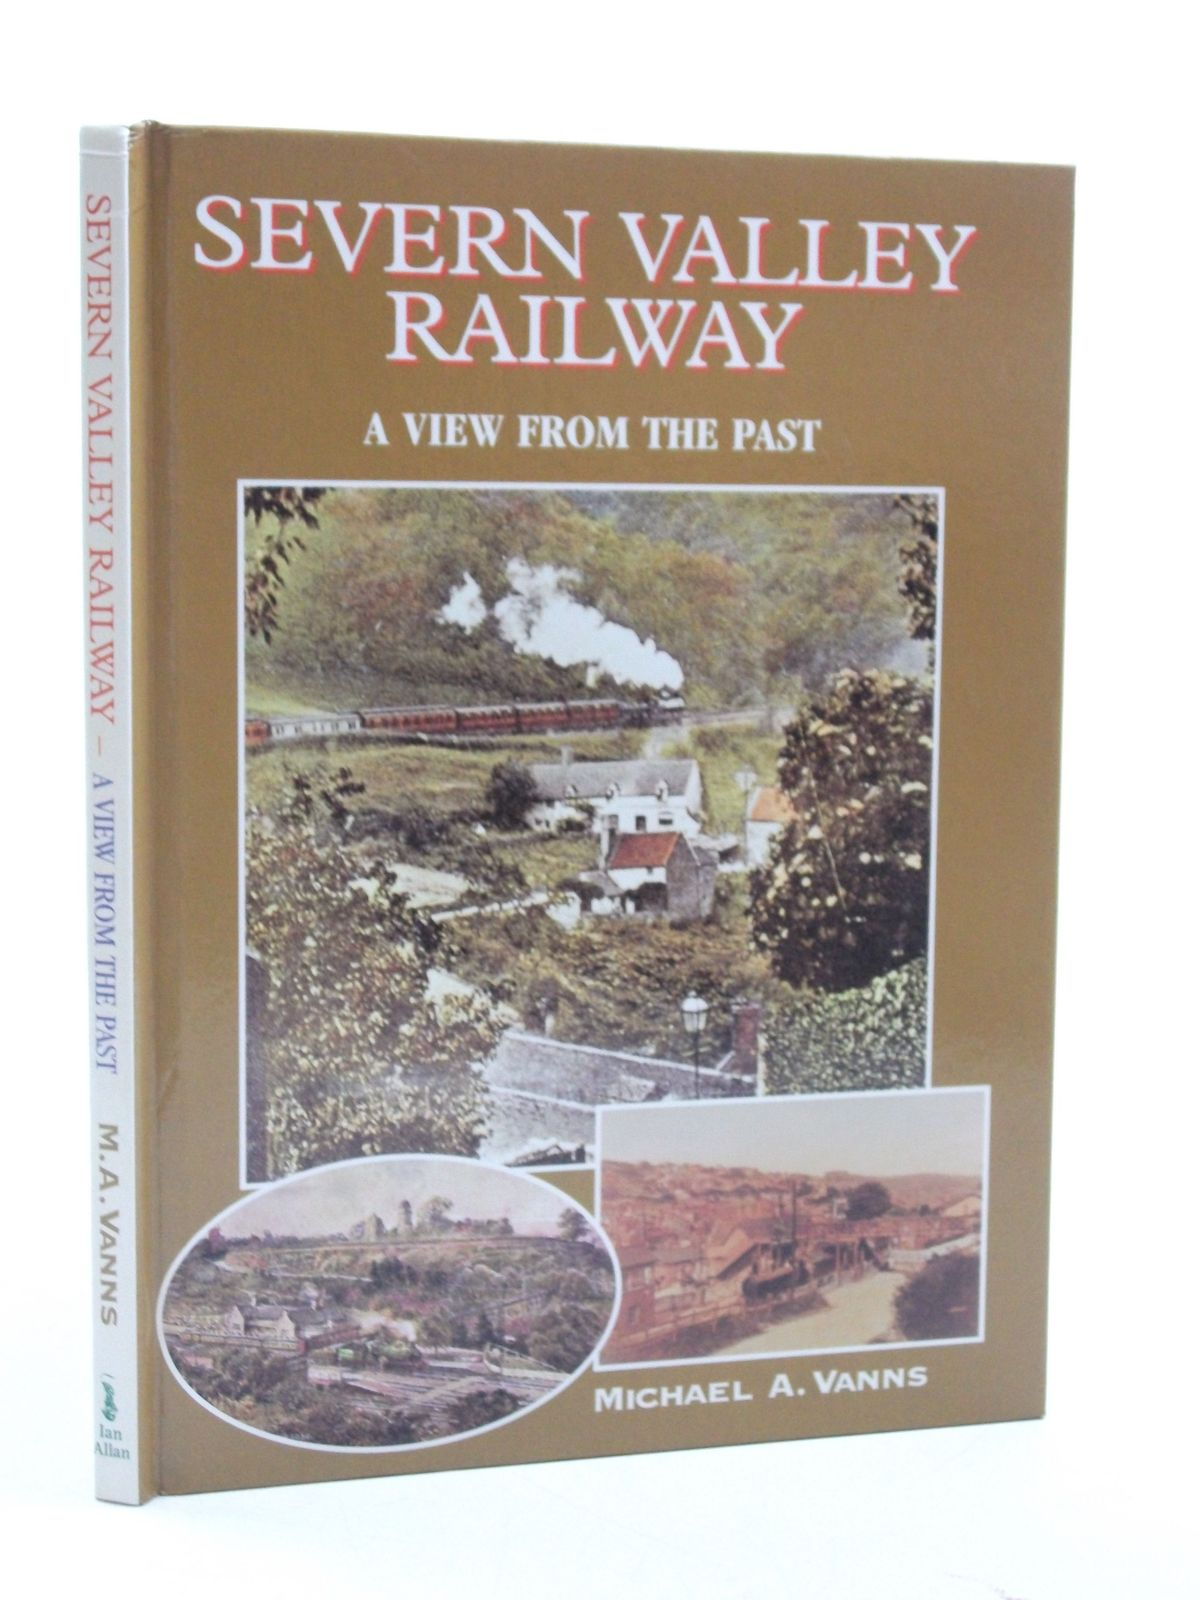 Photo of SEVERN VALLEY RAILWAY A VIEW FROM THE PAST written by Vanns, Michael A. published by Ian Allan (STOCK CODE: 1604584)  for sale by Stella & Rose's Books